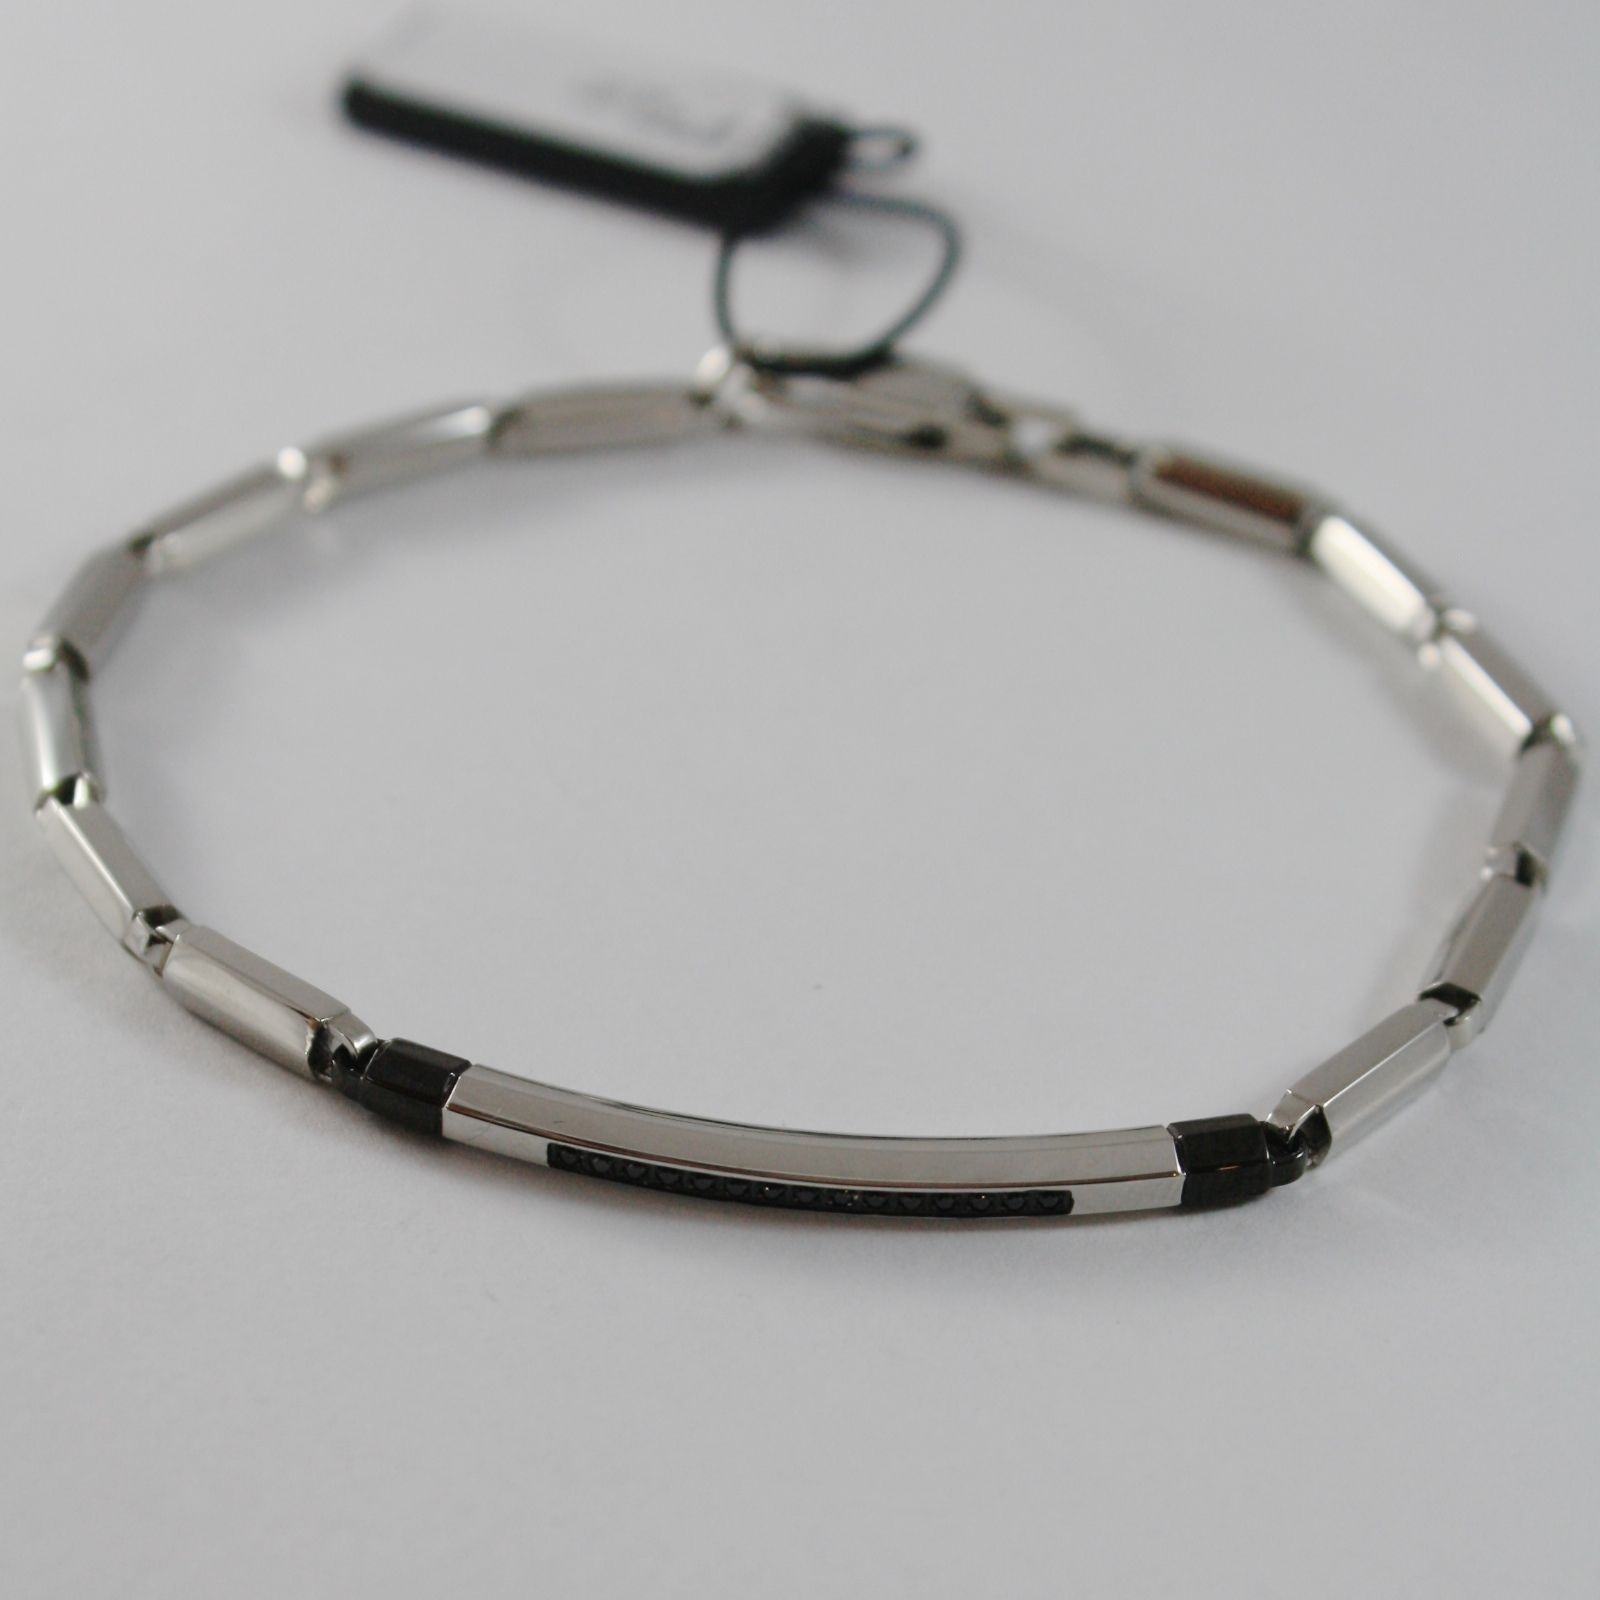 STAINLESS STEEL ZANCAN BRACELET, ROUND TUBE MESH PLATE AND BLACK CUBIC ZIRCONIA